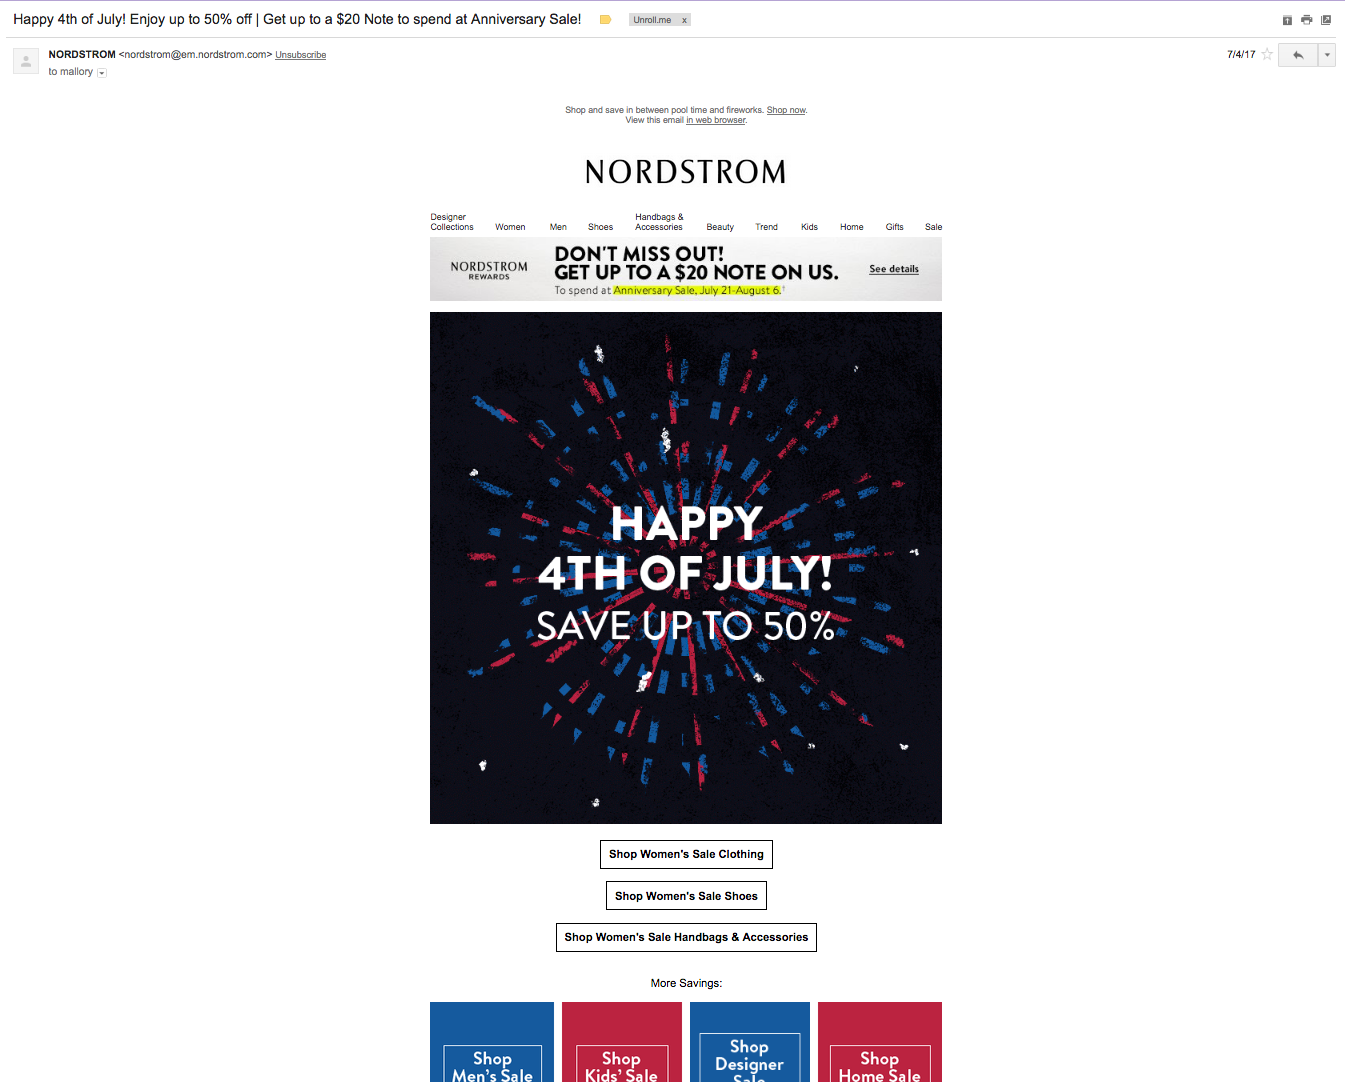 Nordstrom 4th of July email